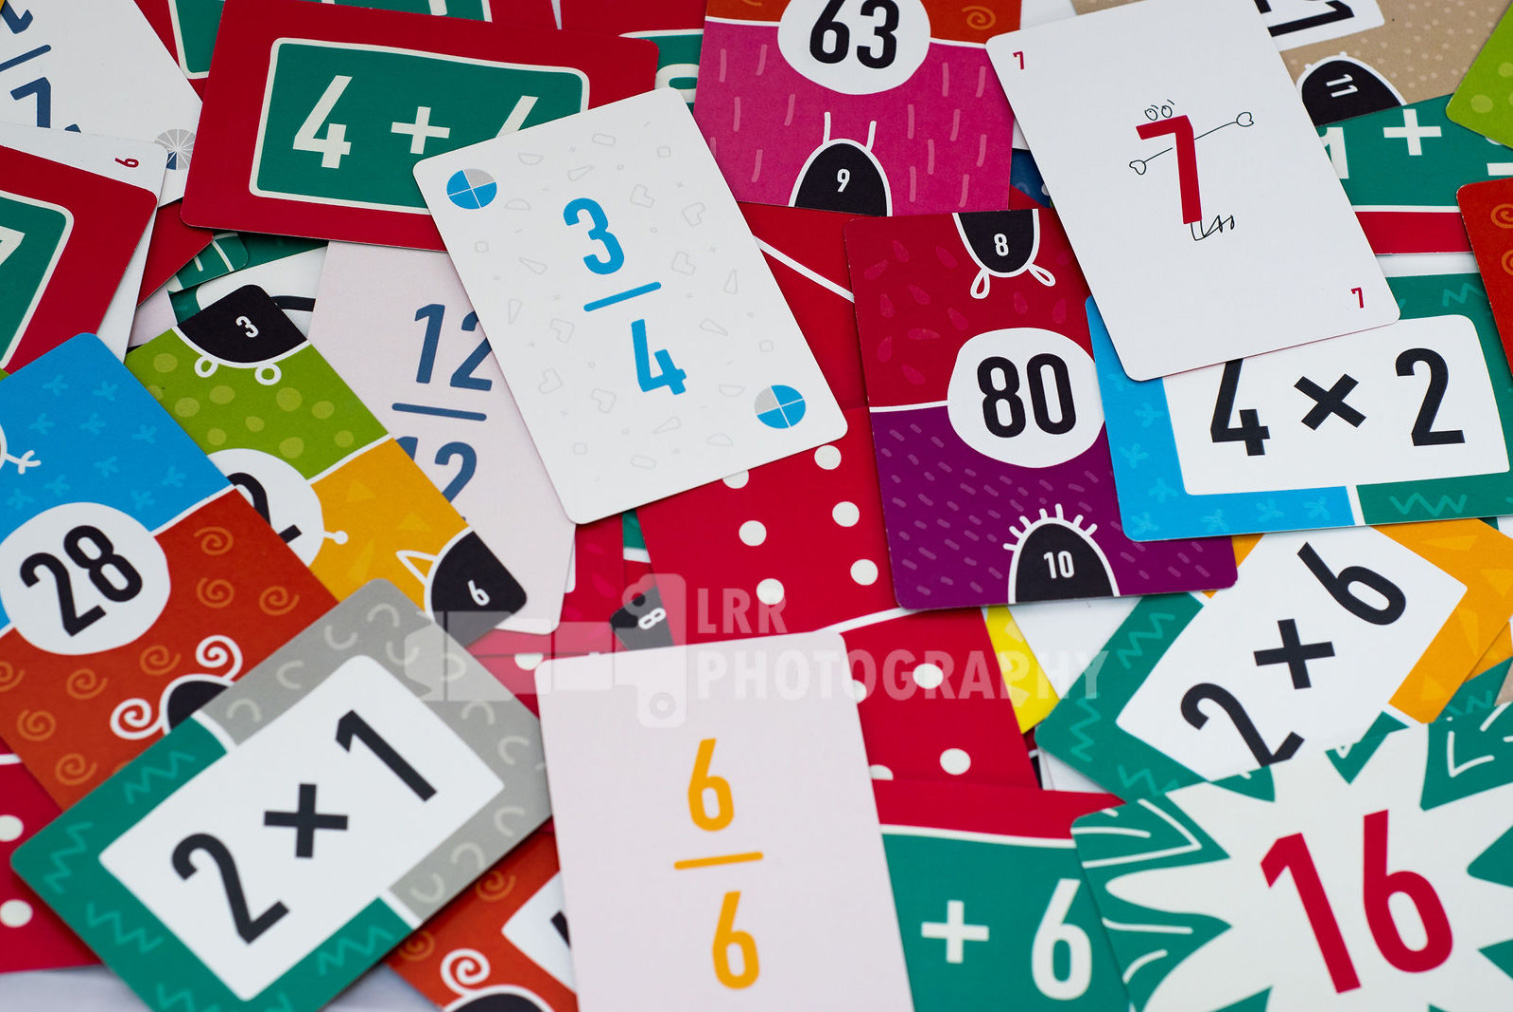 FunKey Maths cards scattered